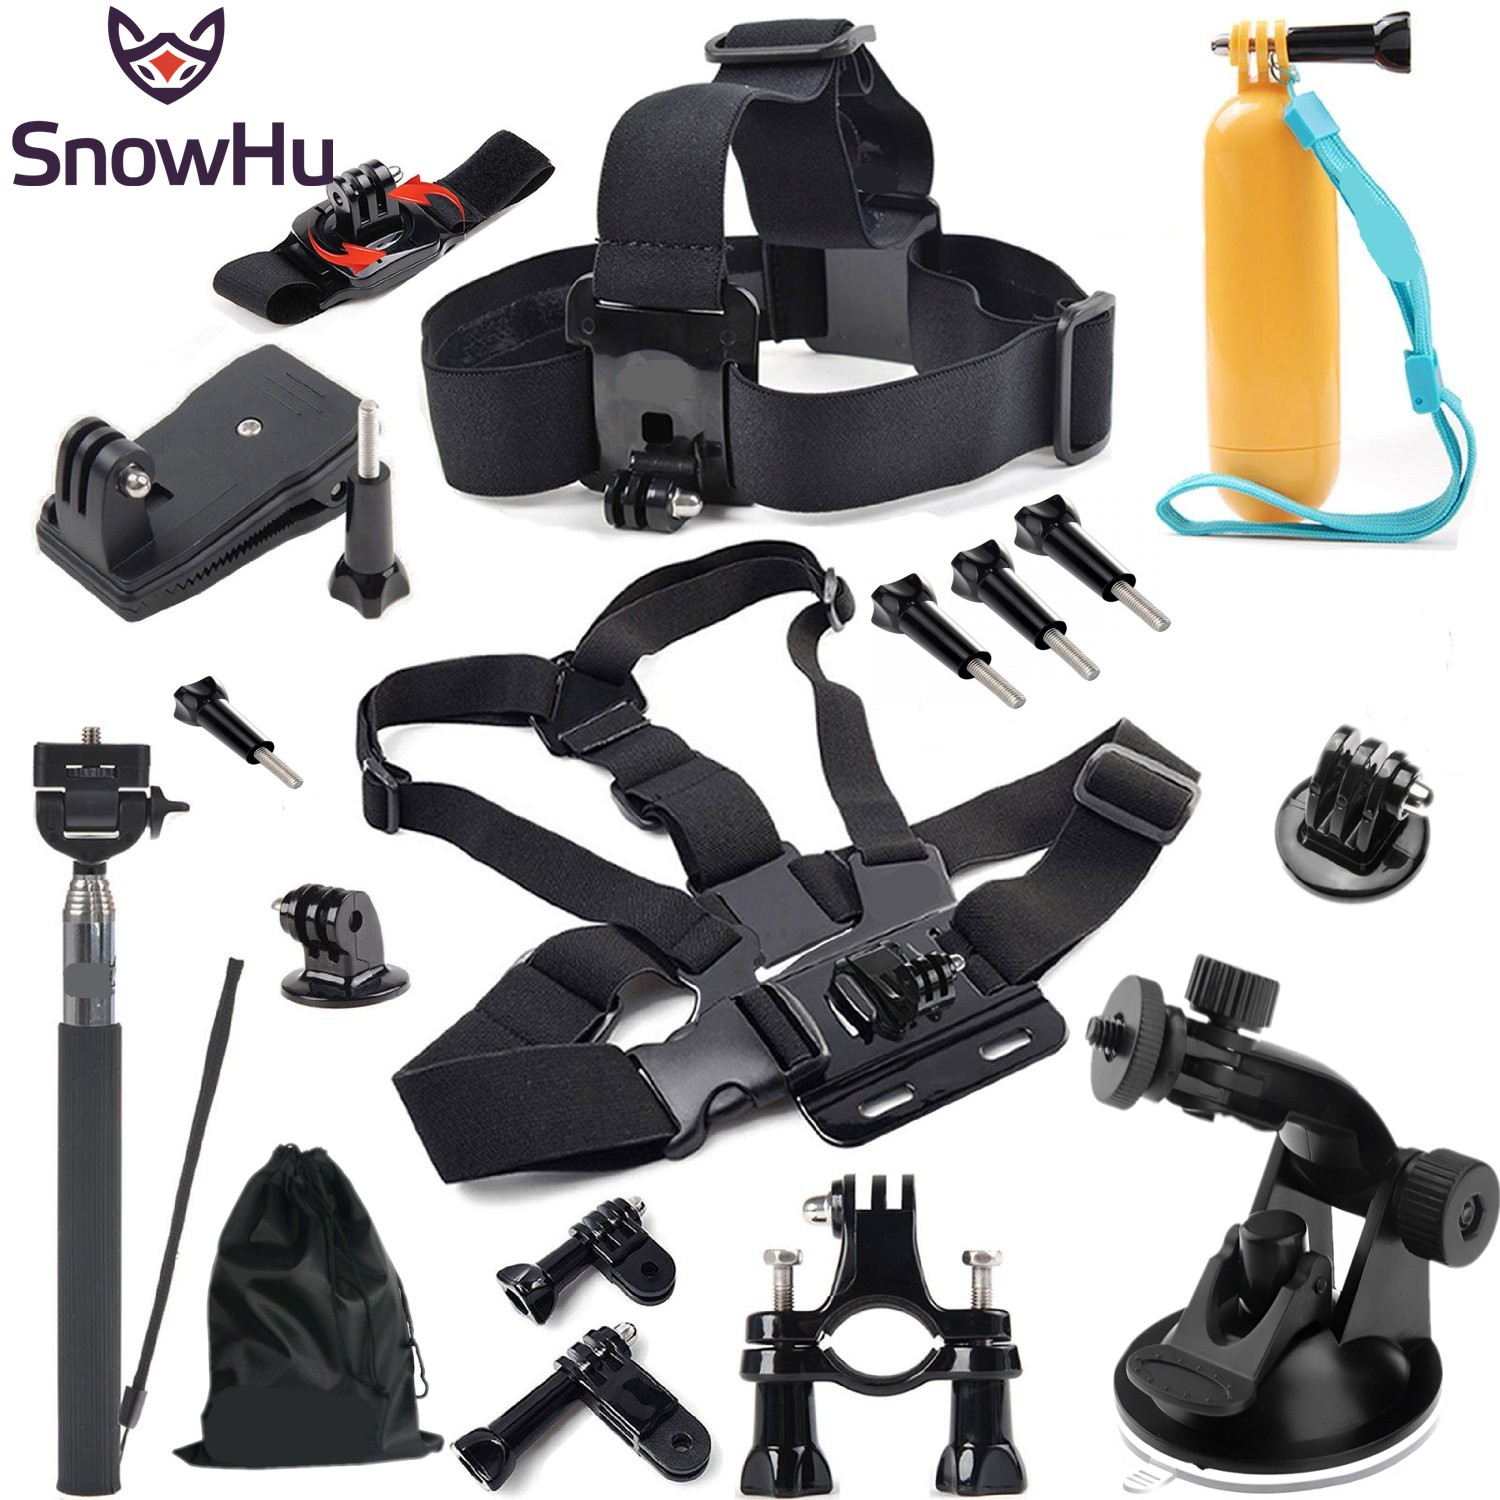 Galleria fotografica SnowHu For go pro Accessories Head chest strap bracelet Monopod with Mount Adapter for GoPro Hero 5 4 3 3+ SJ4000 xiaomi yi GS07